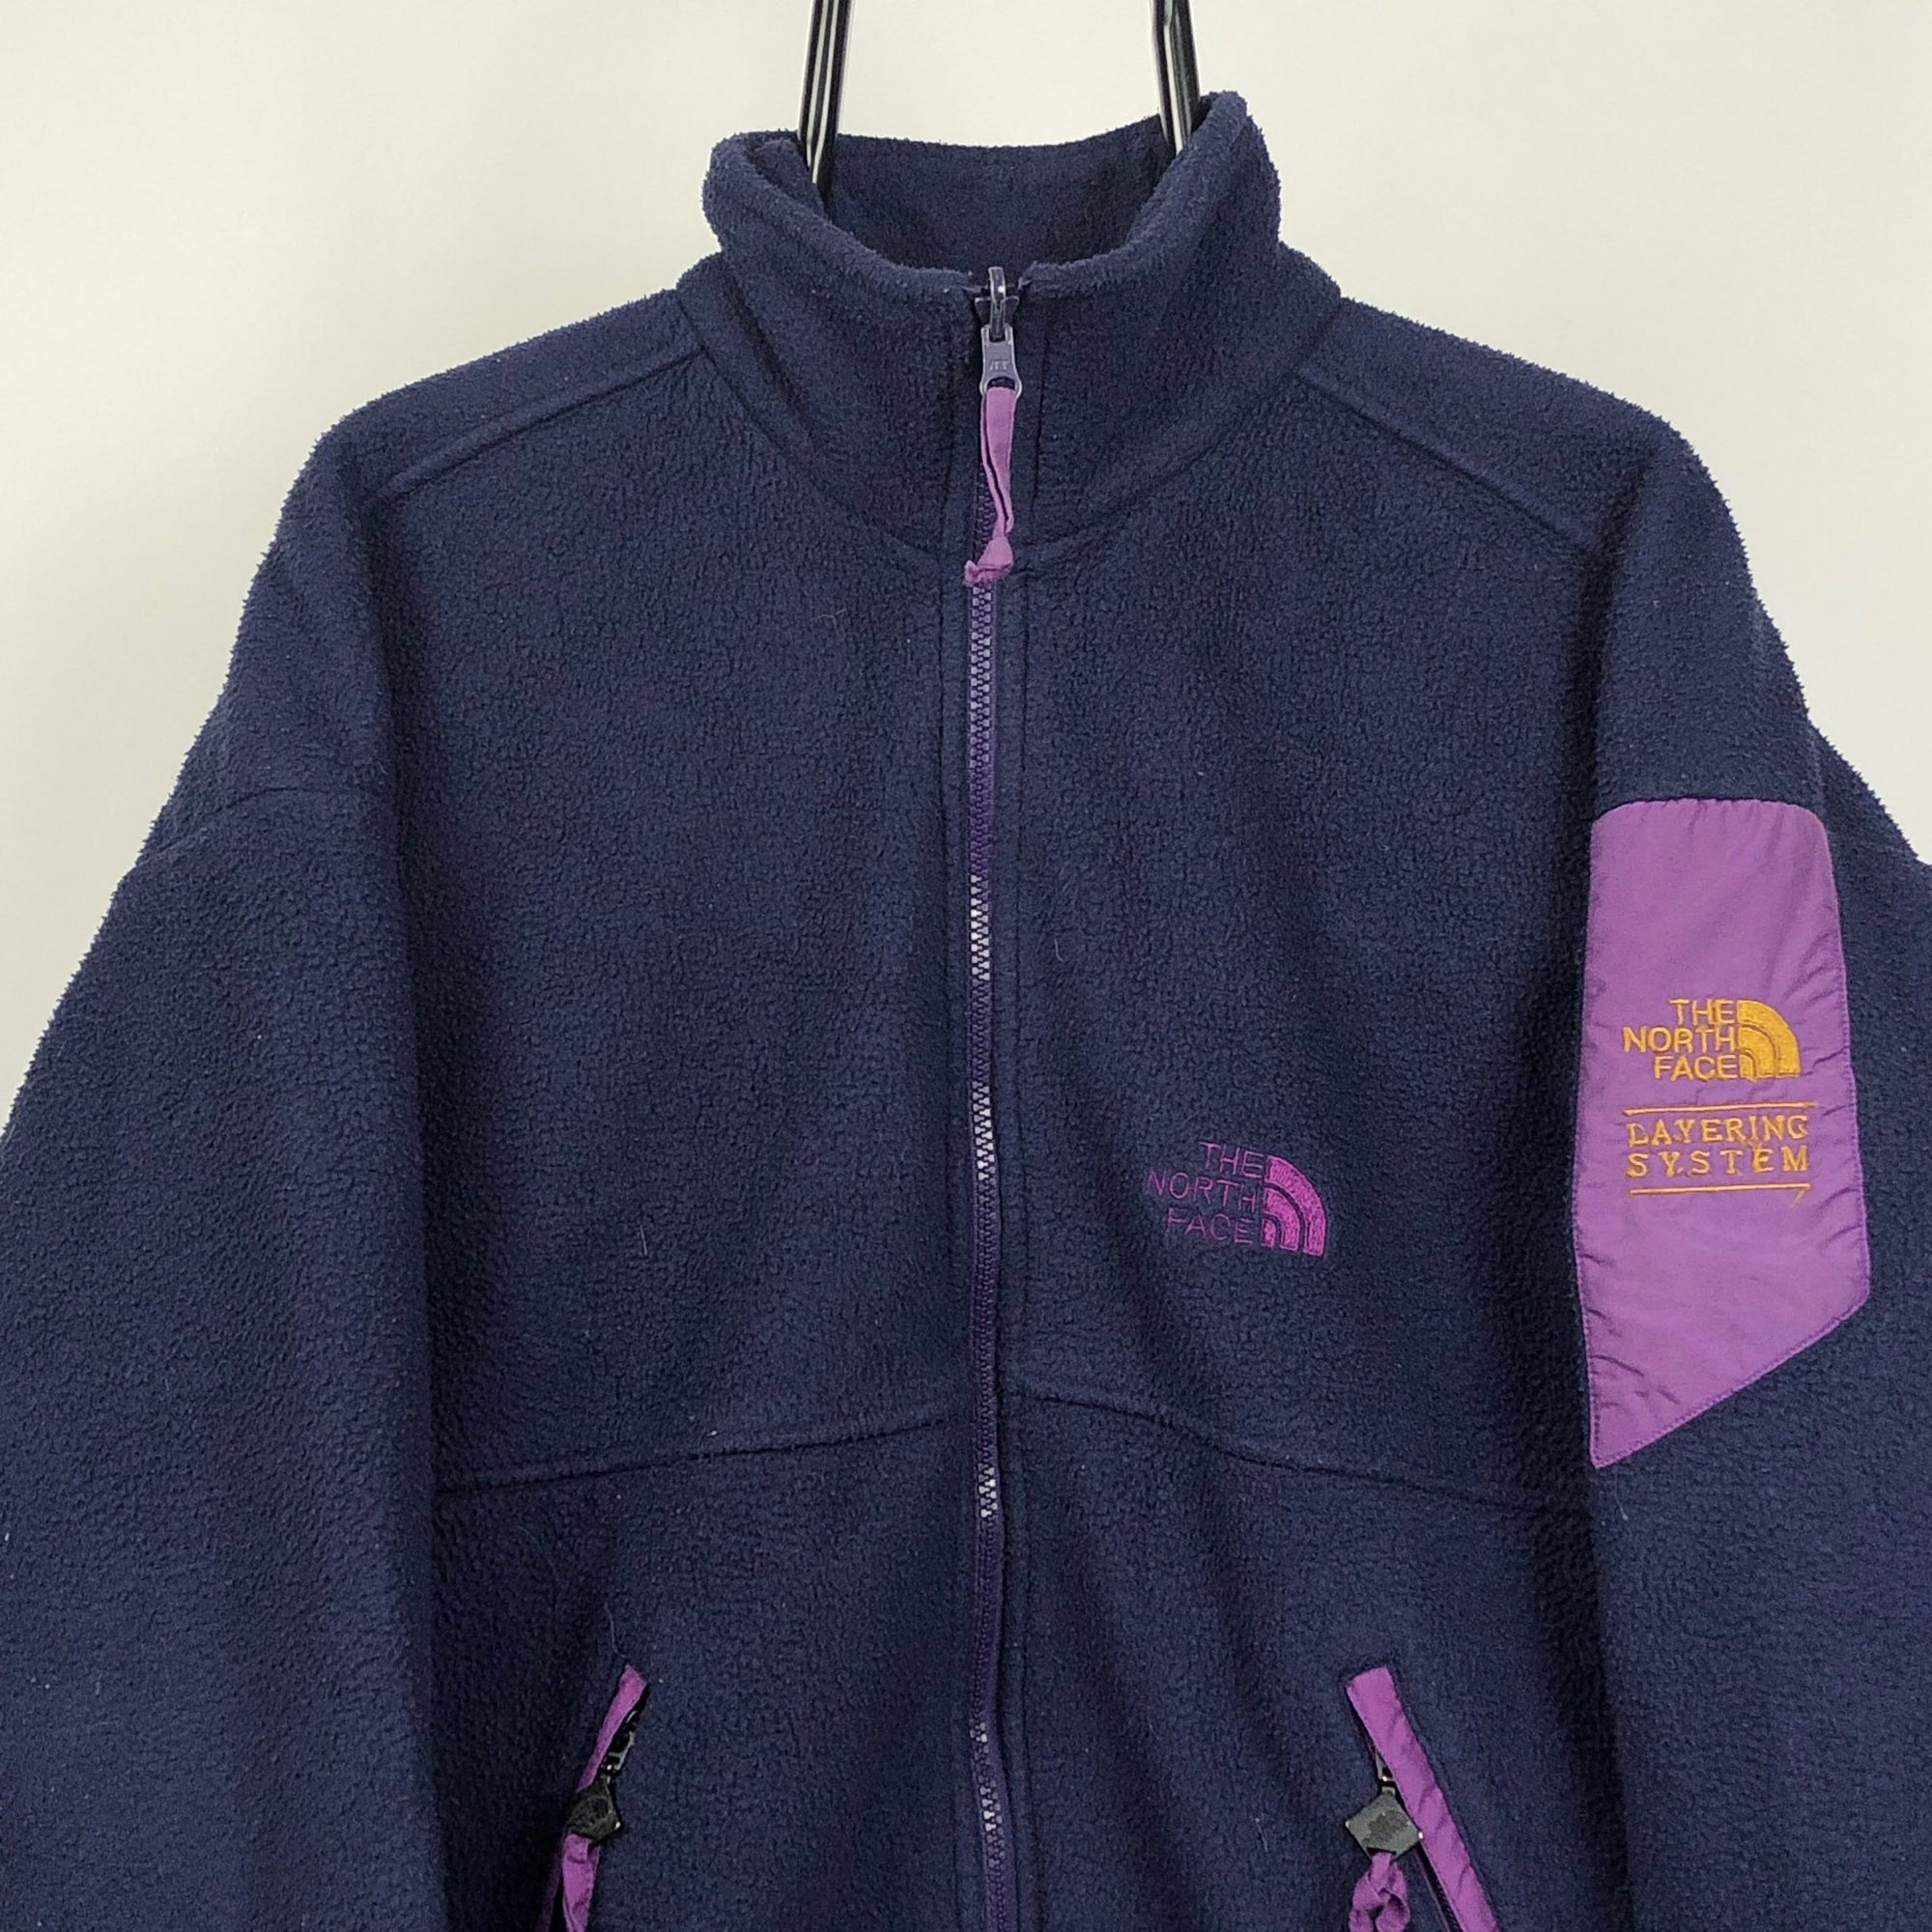 North Face Polartec Fleece in Purple - Men's Medium/Women's Large